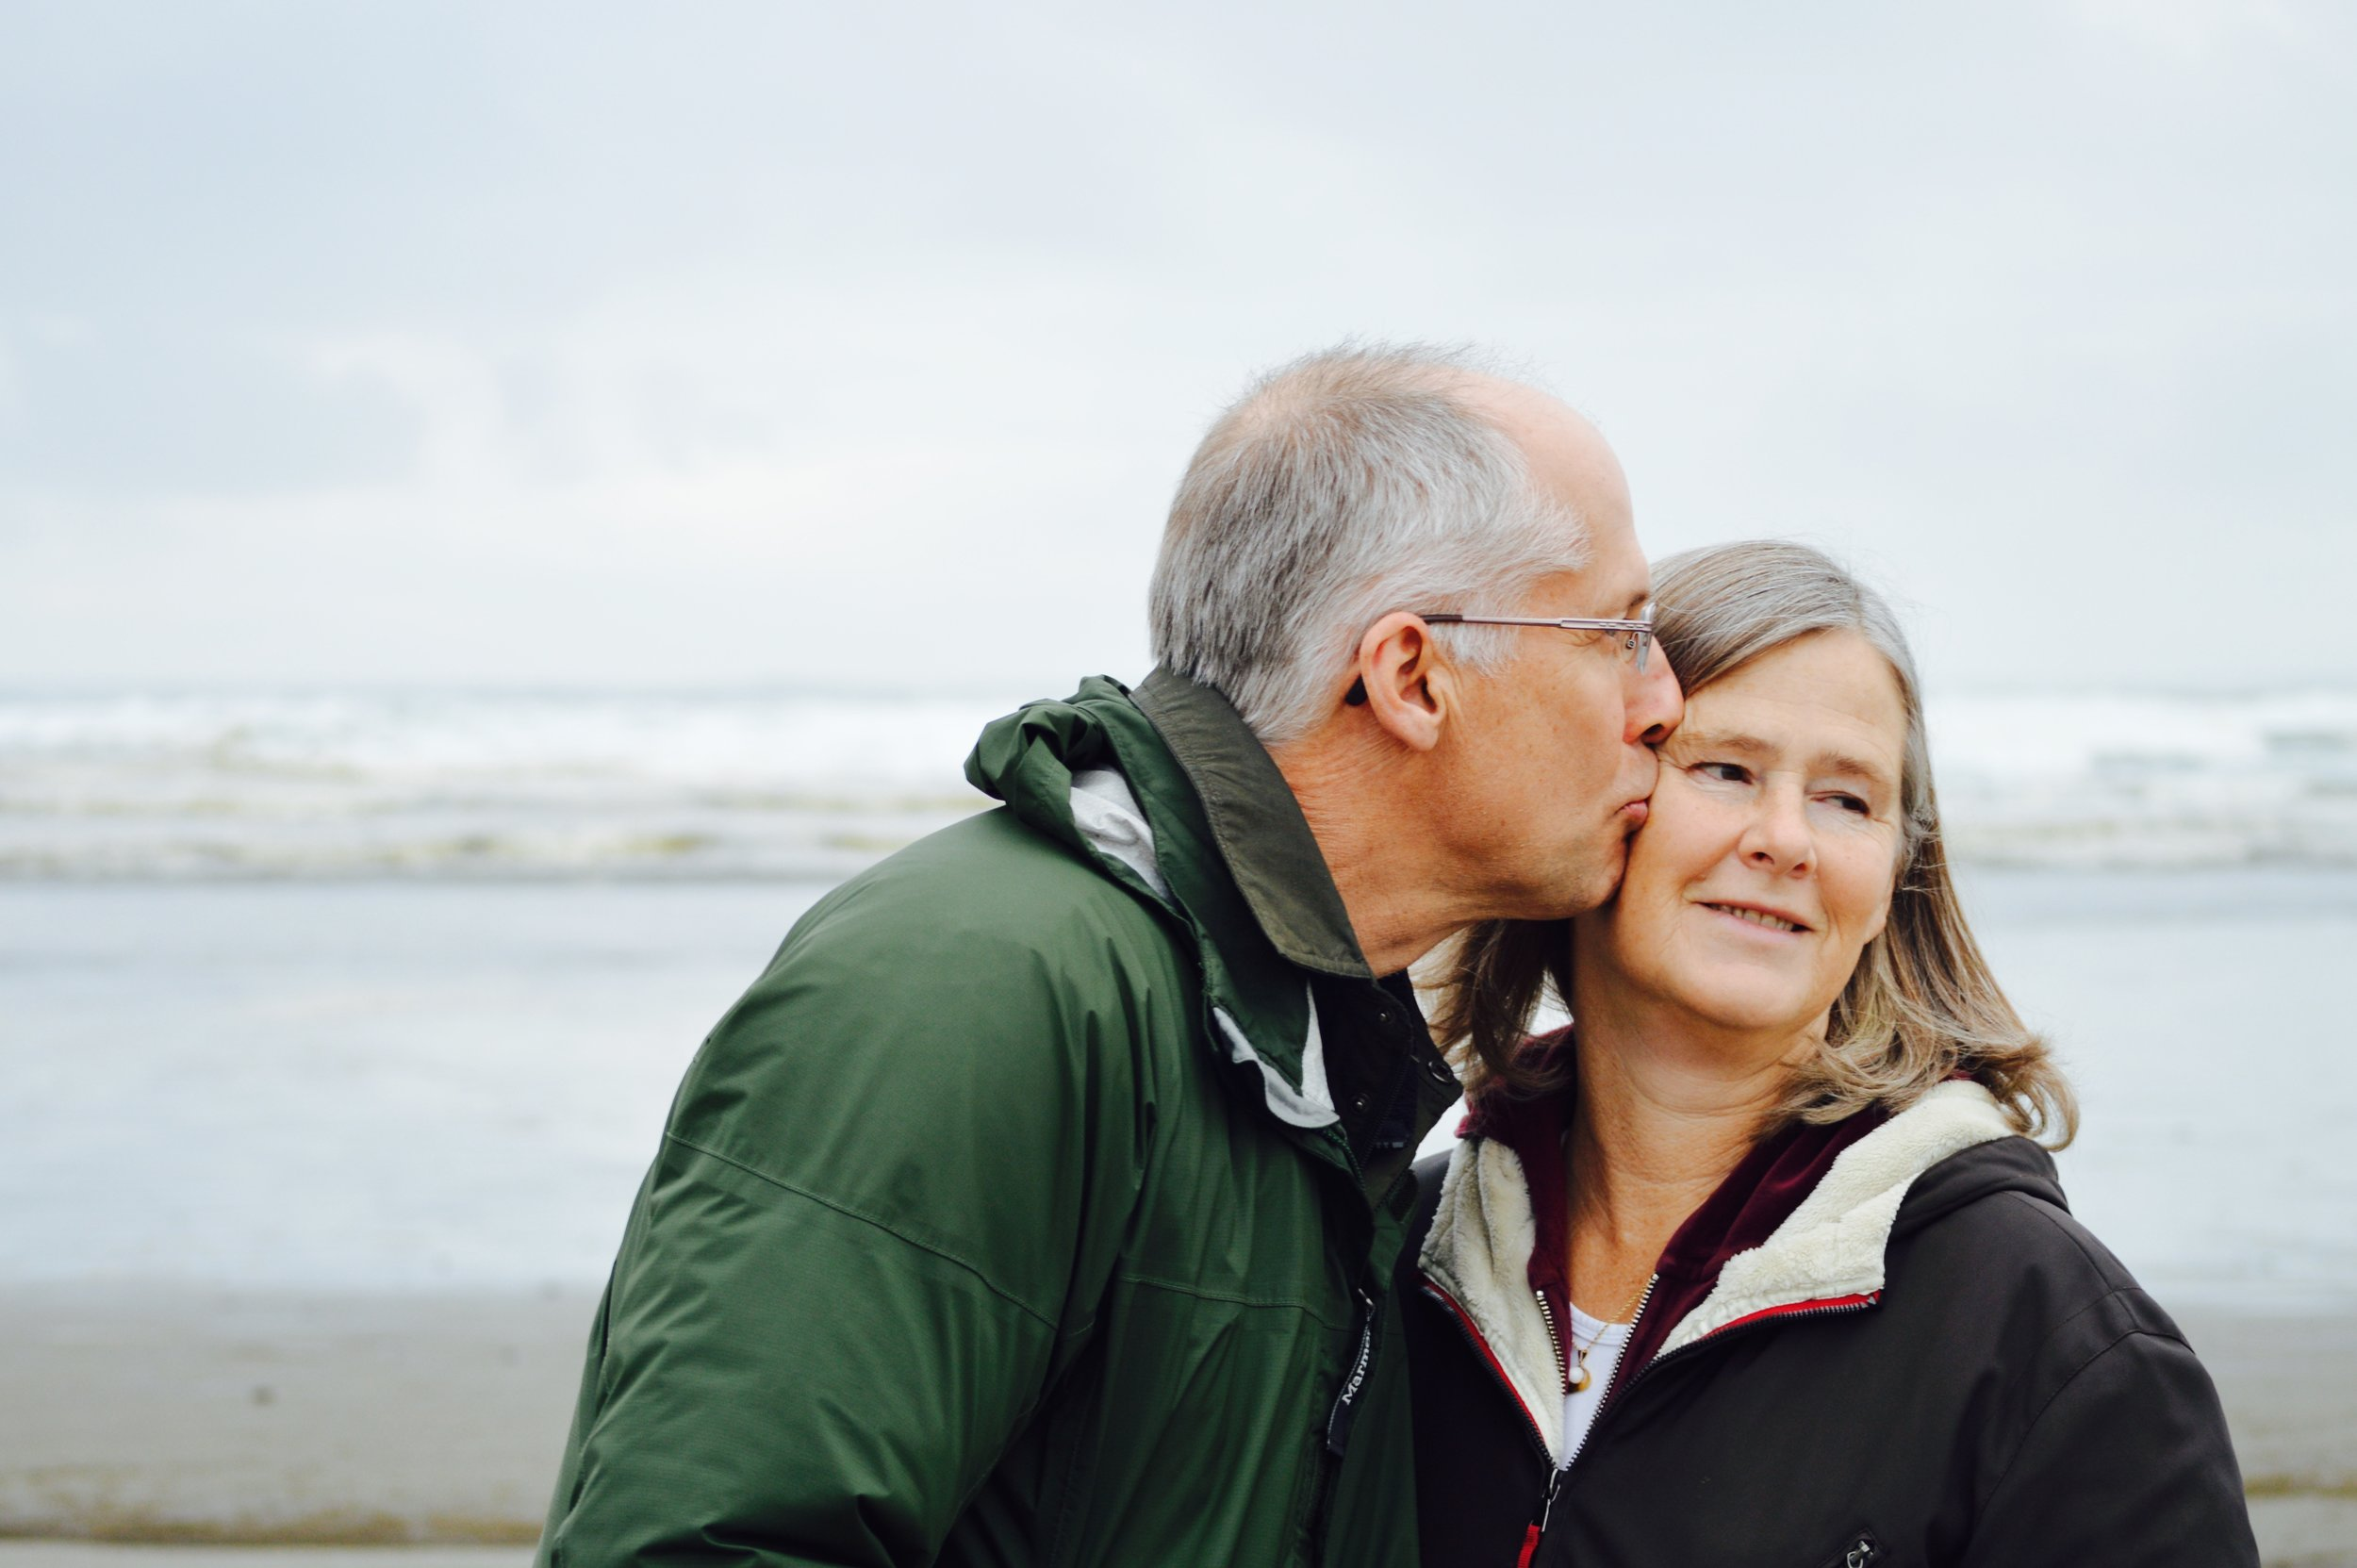 Here's How to Get More Out Of Your Retirement   Should you retire at the earliest age possible? That depends on each person and his or her situation, goals, and finances. Find out here.